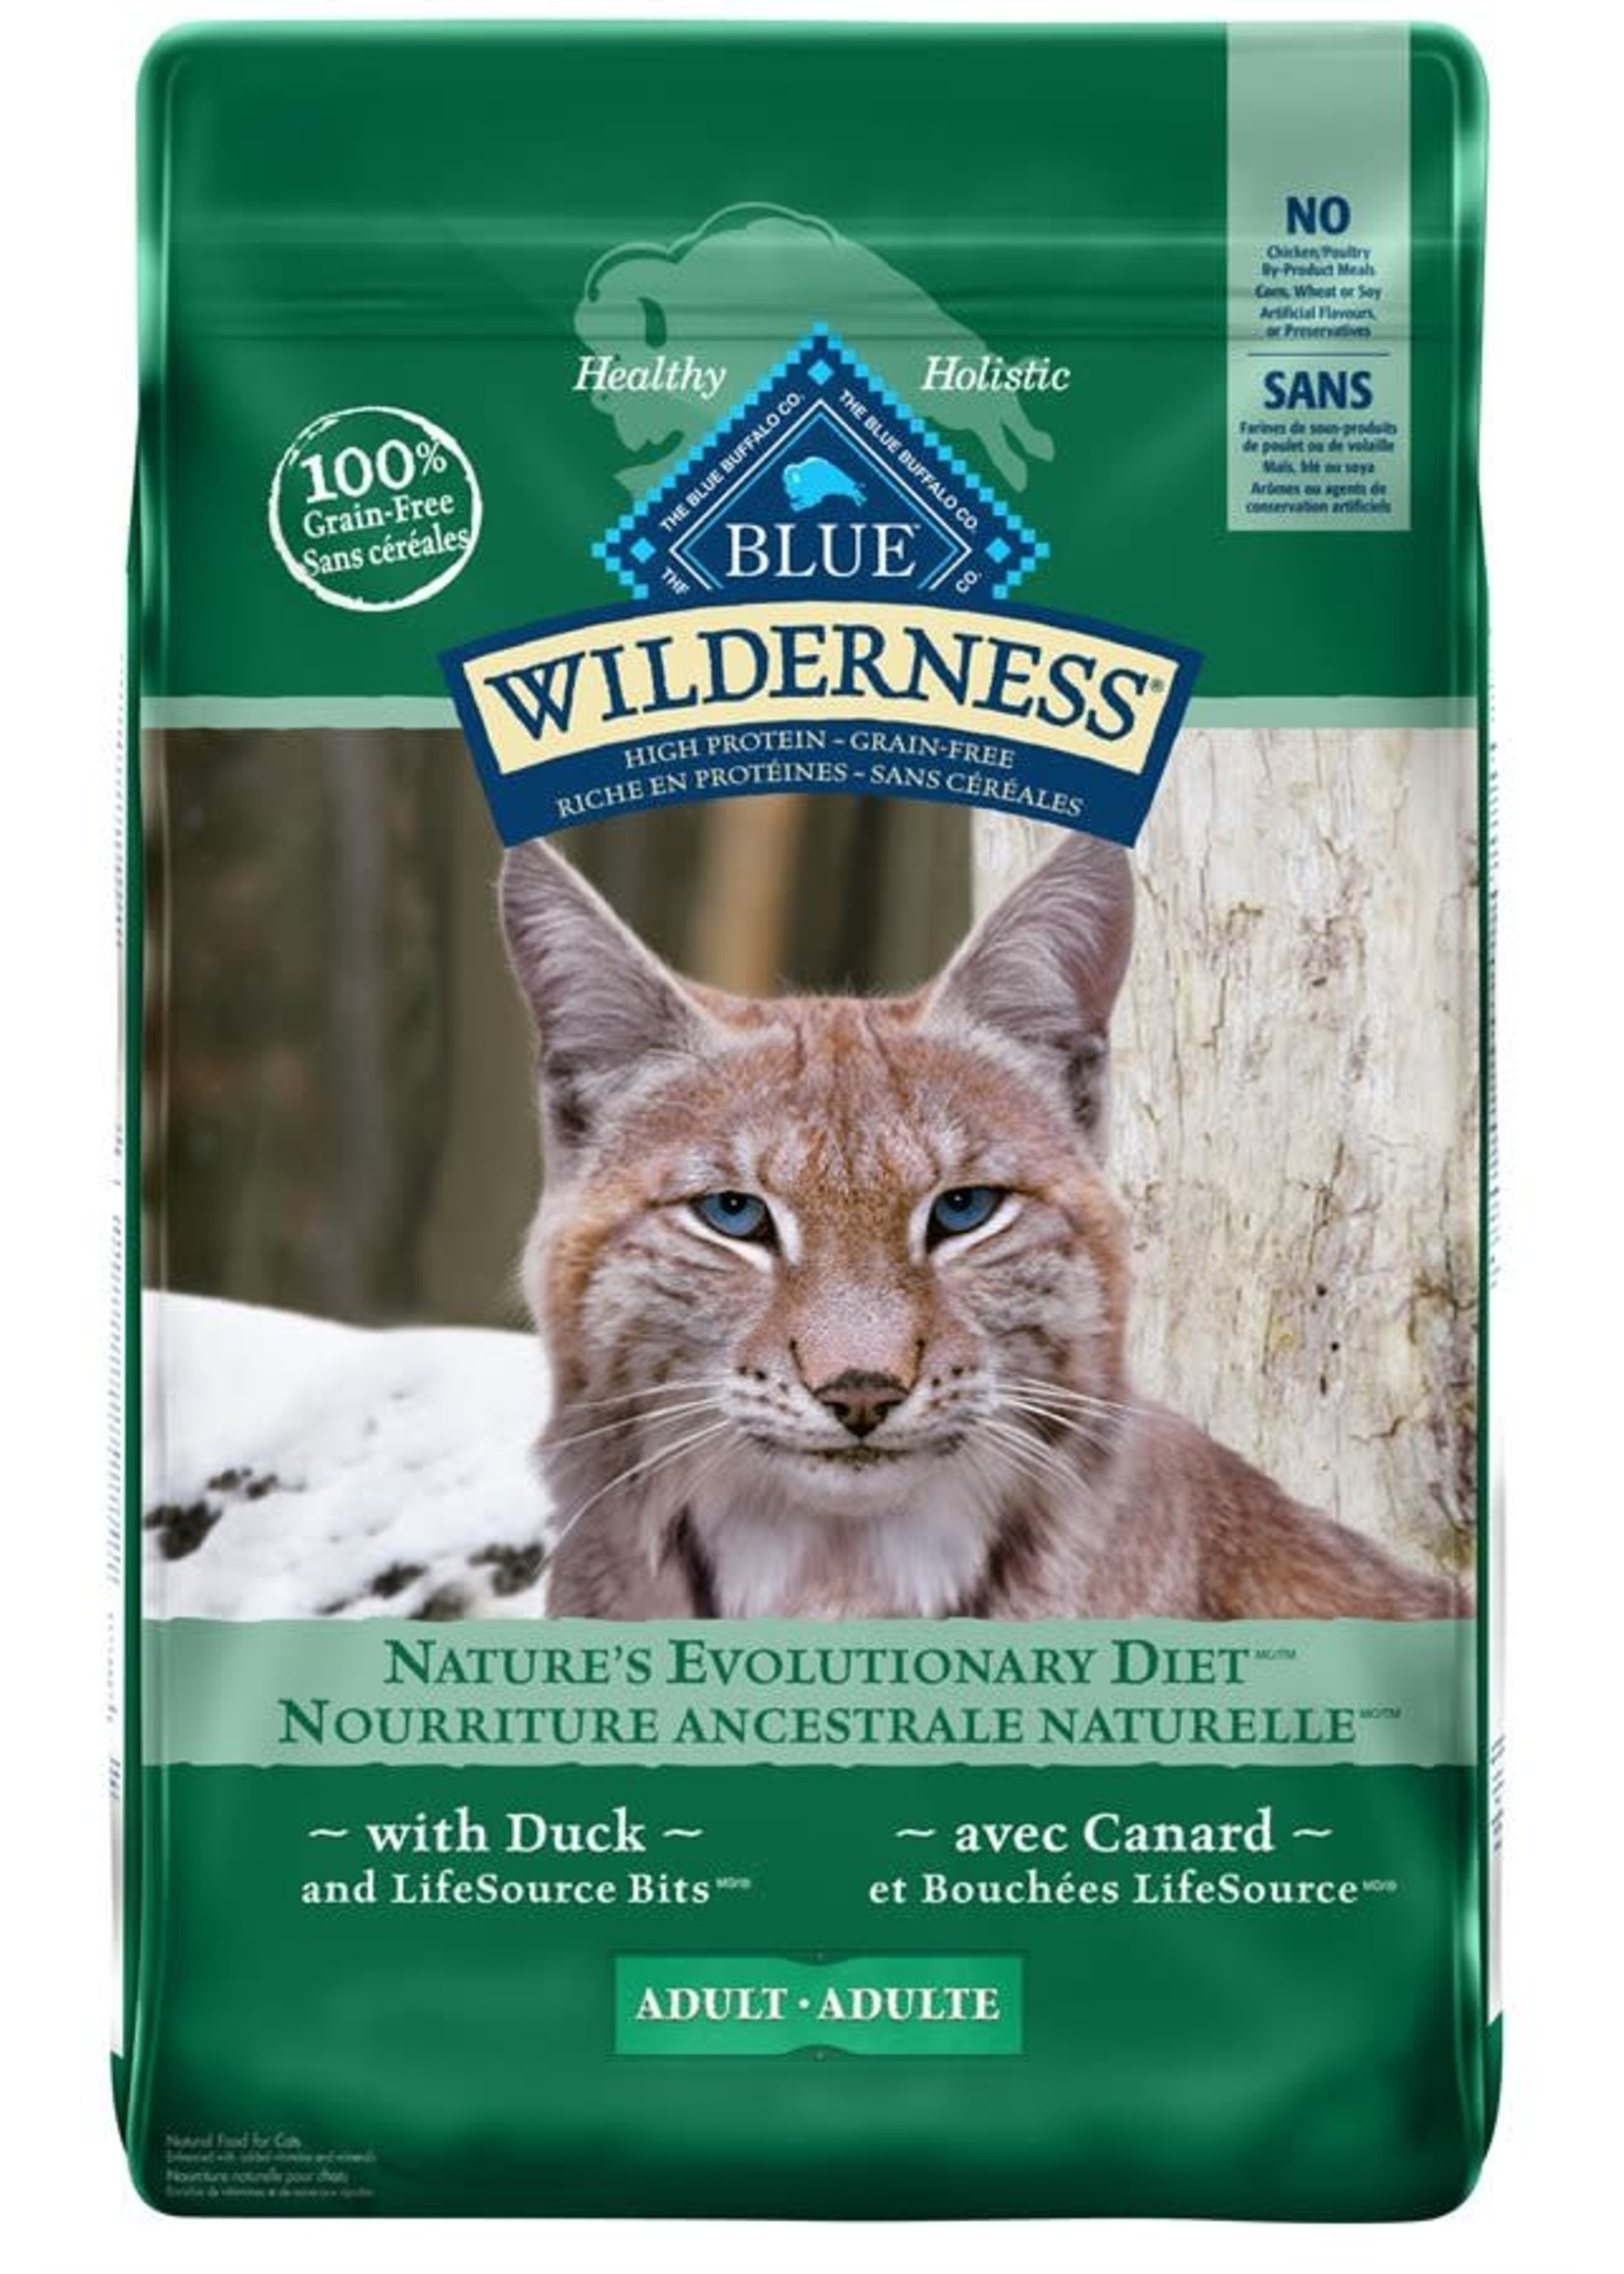 Blue® Blue® Wilderness™ Adult with Duck and LifeSource Bits™ 5lbs